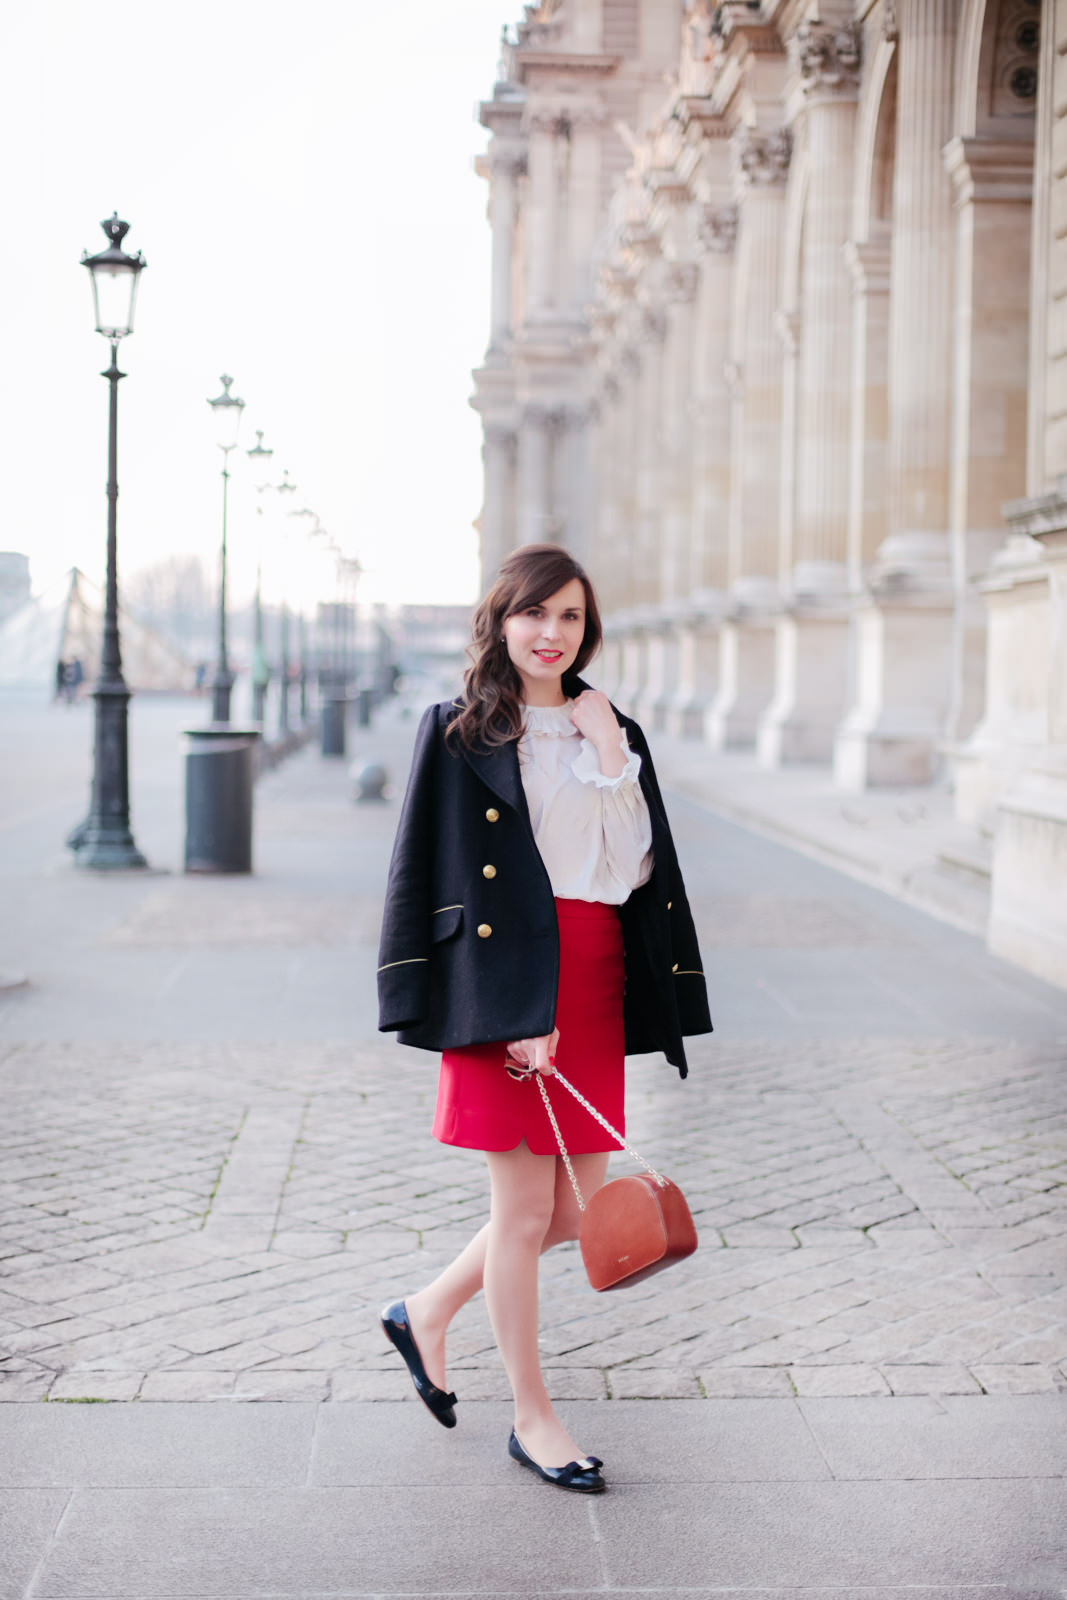 Blog-Mode-And-The-City-Looks-3-tenues-3-collants-2